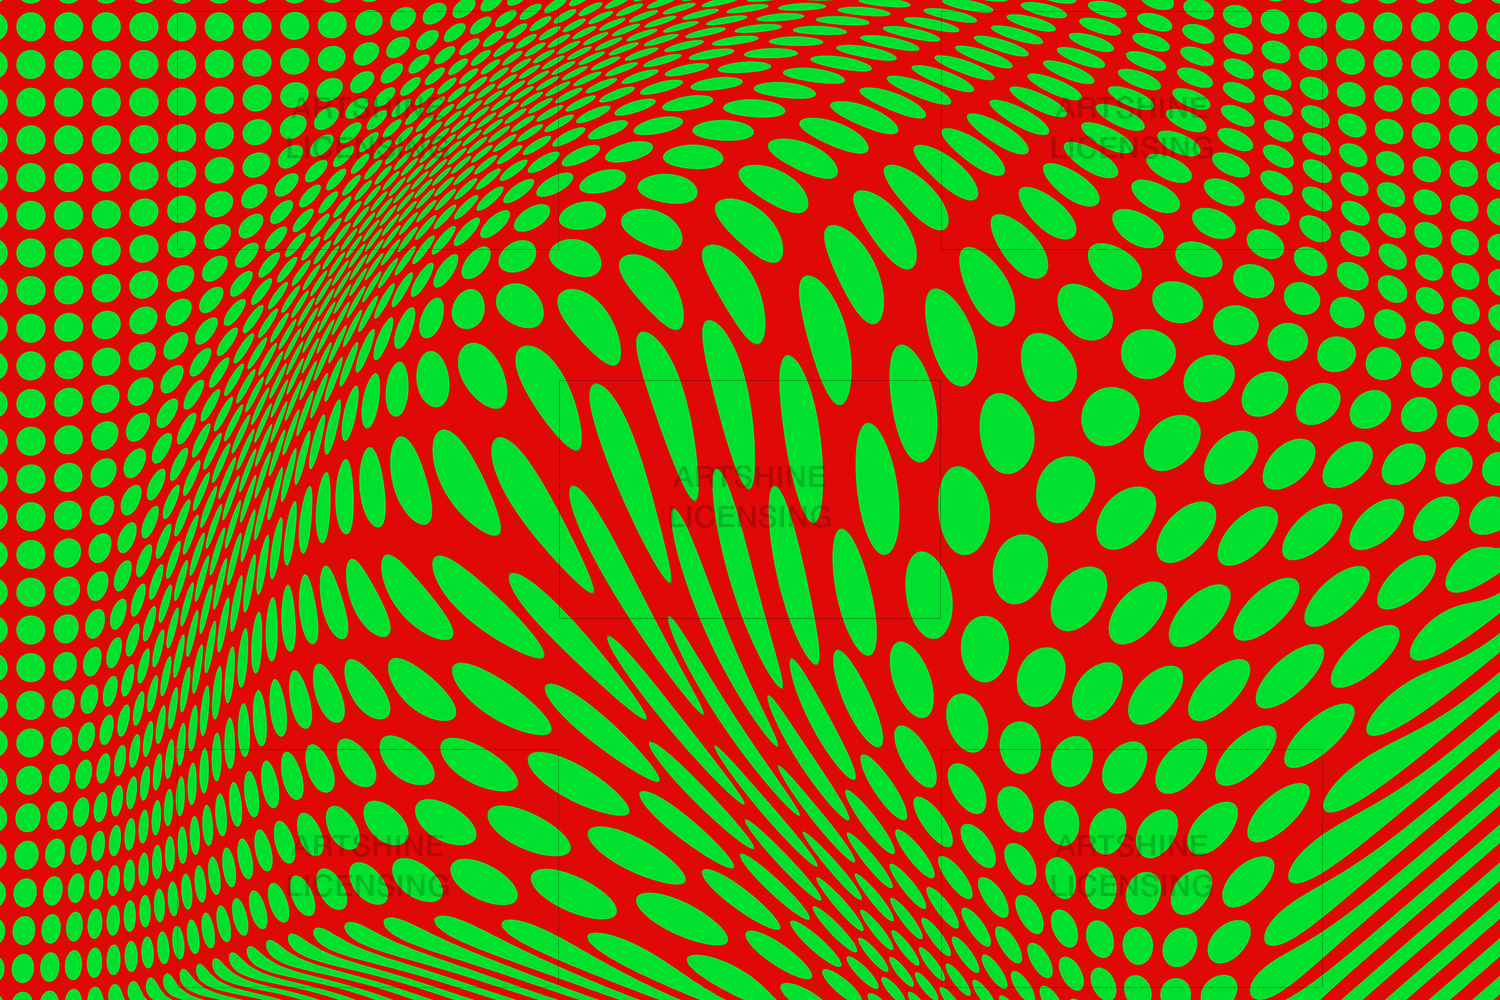 Optical art_01_JC32